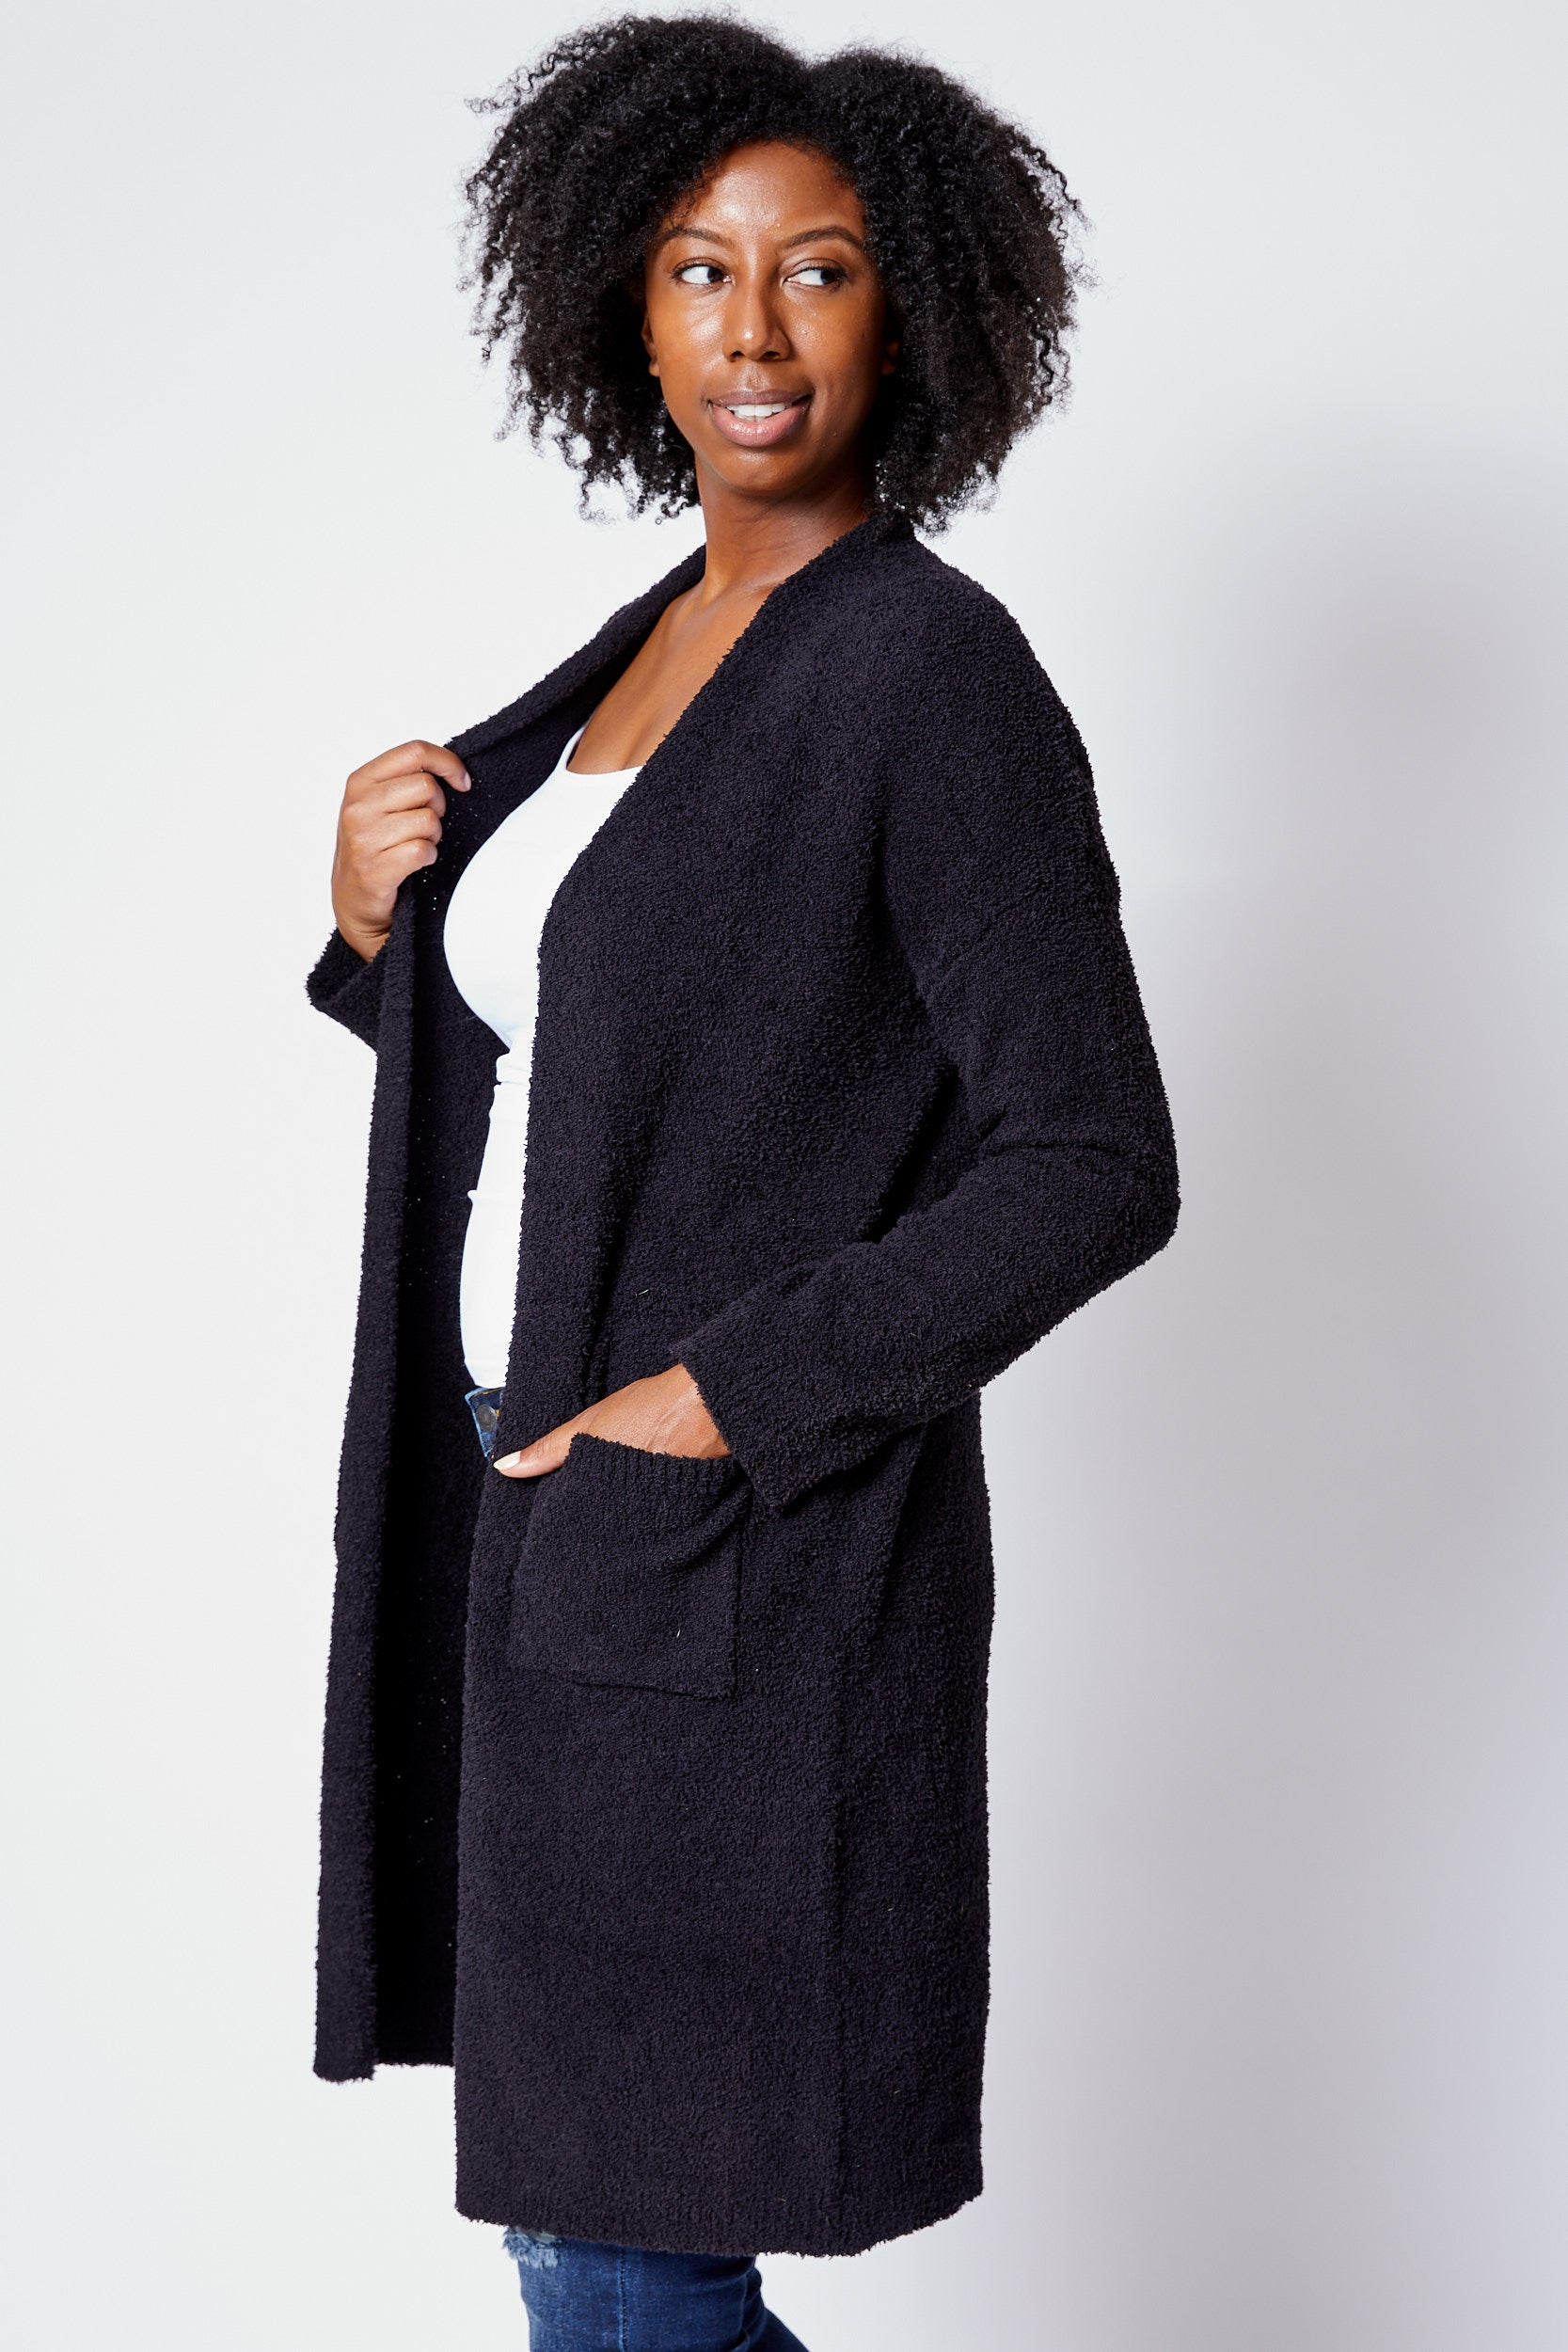 Super Soft Cardigan - Jacqueline B Clothing